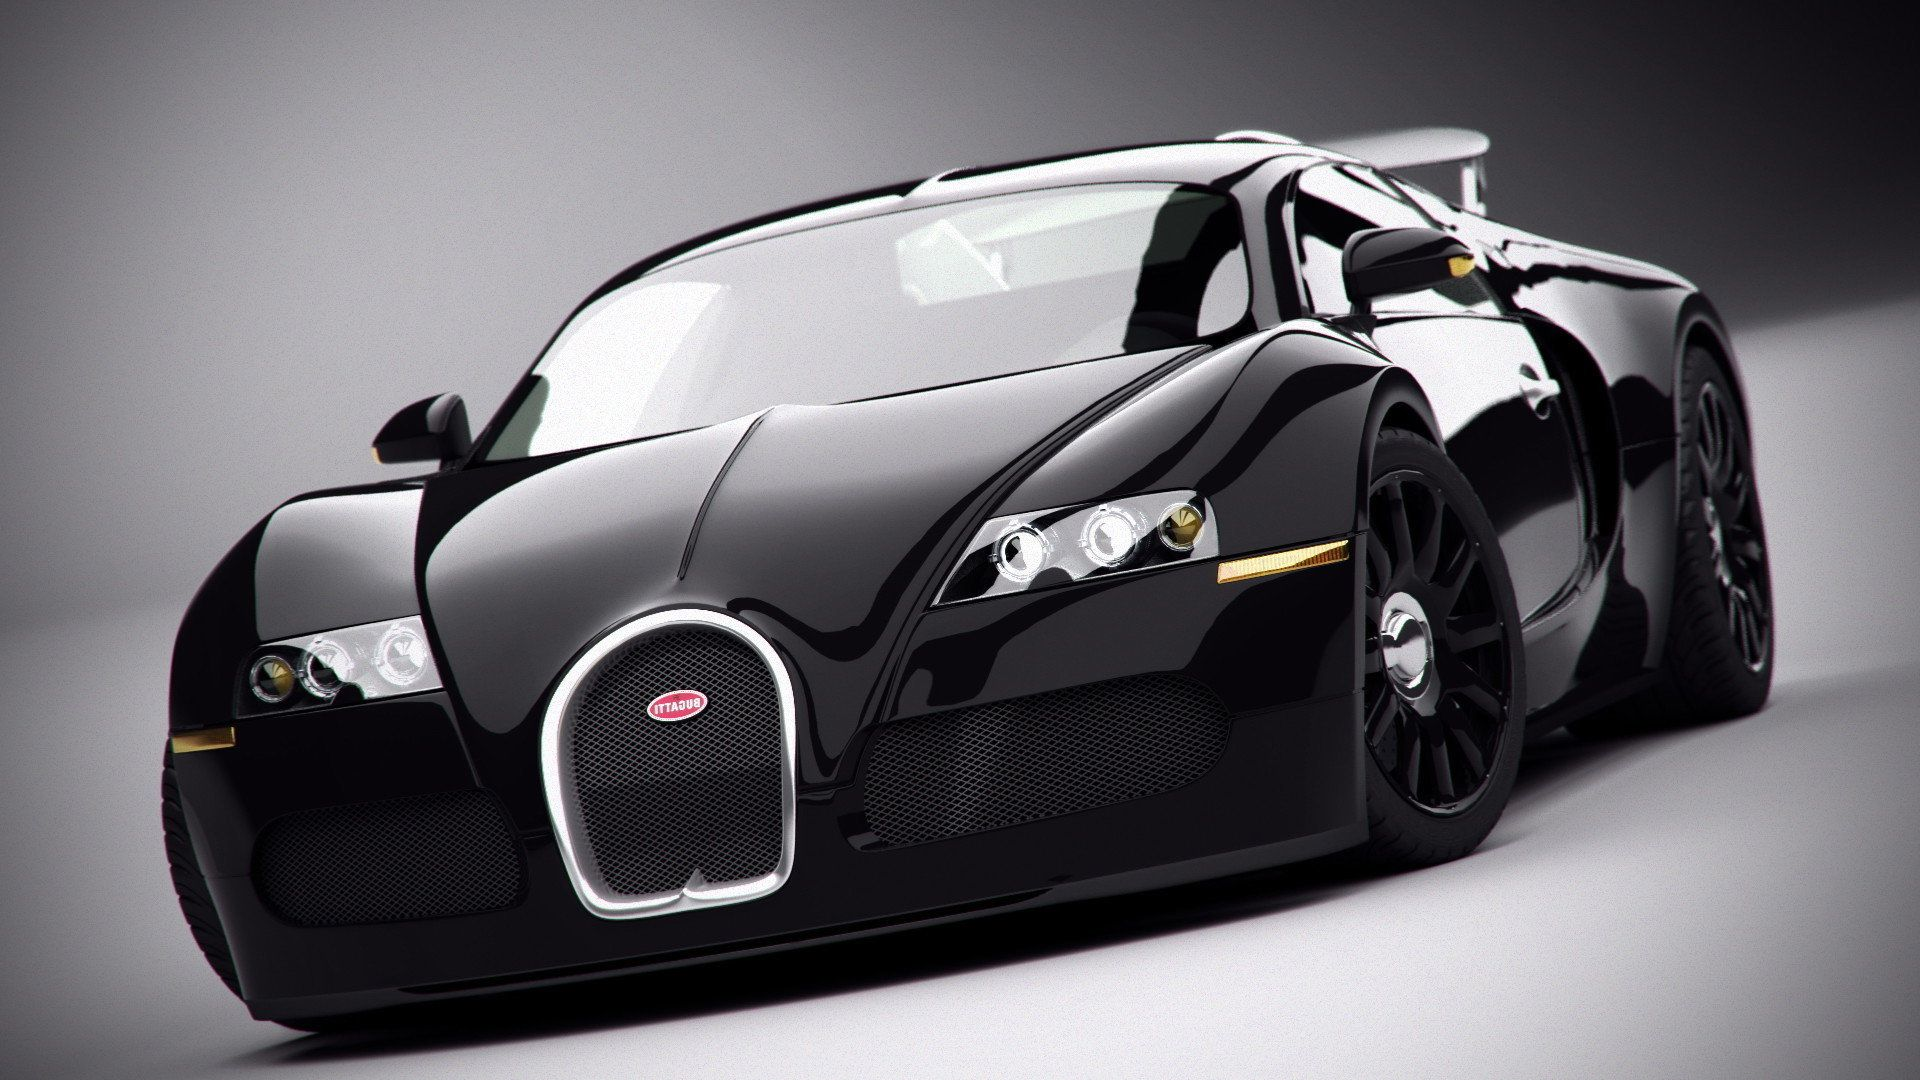 Bugatti Veyron Wallpaper Hd Resolution Jqw Cars Pinterest